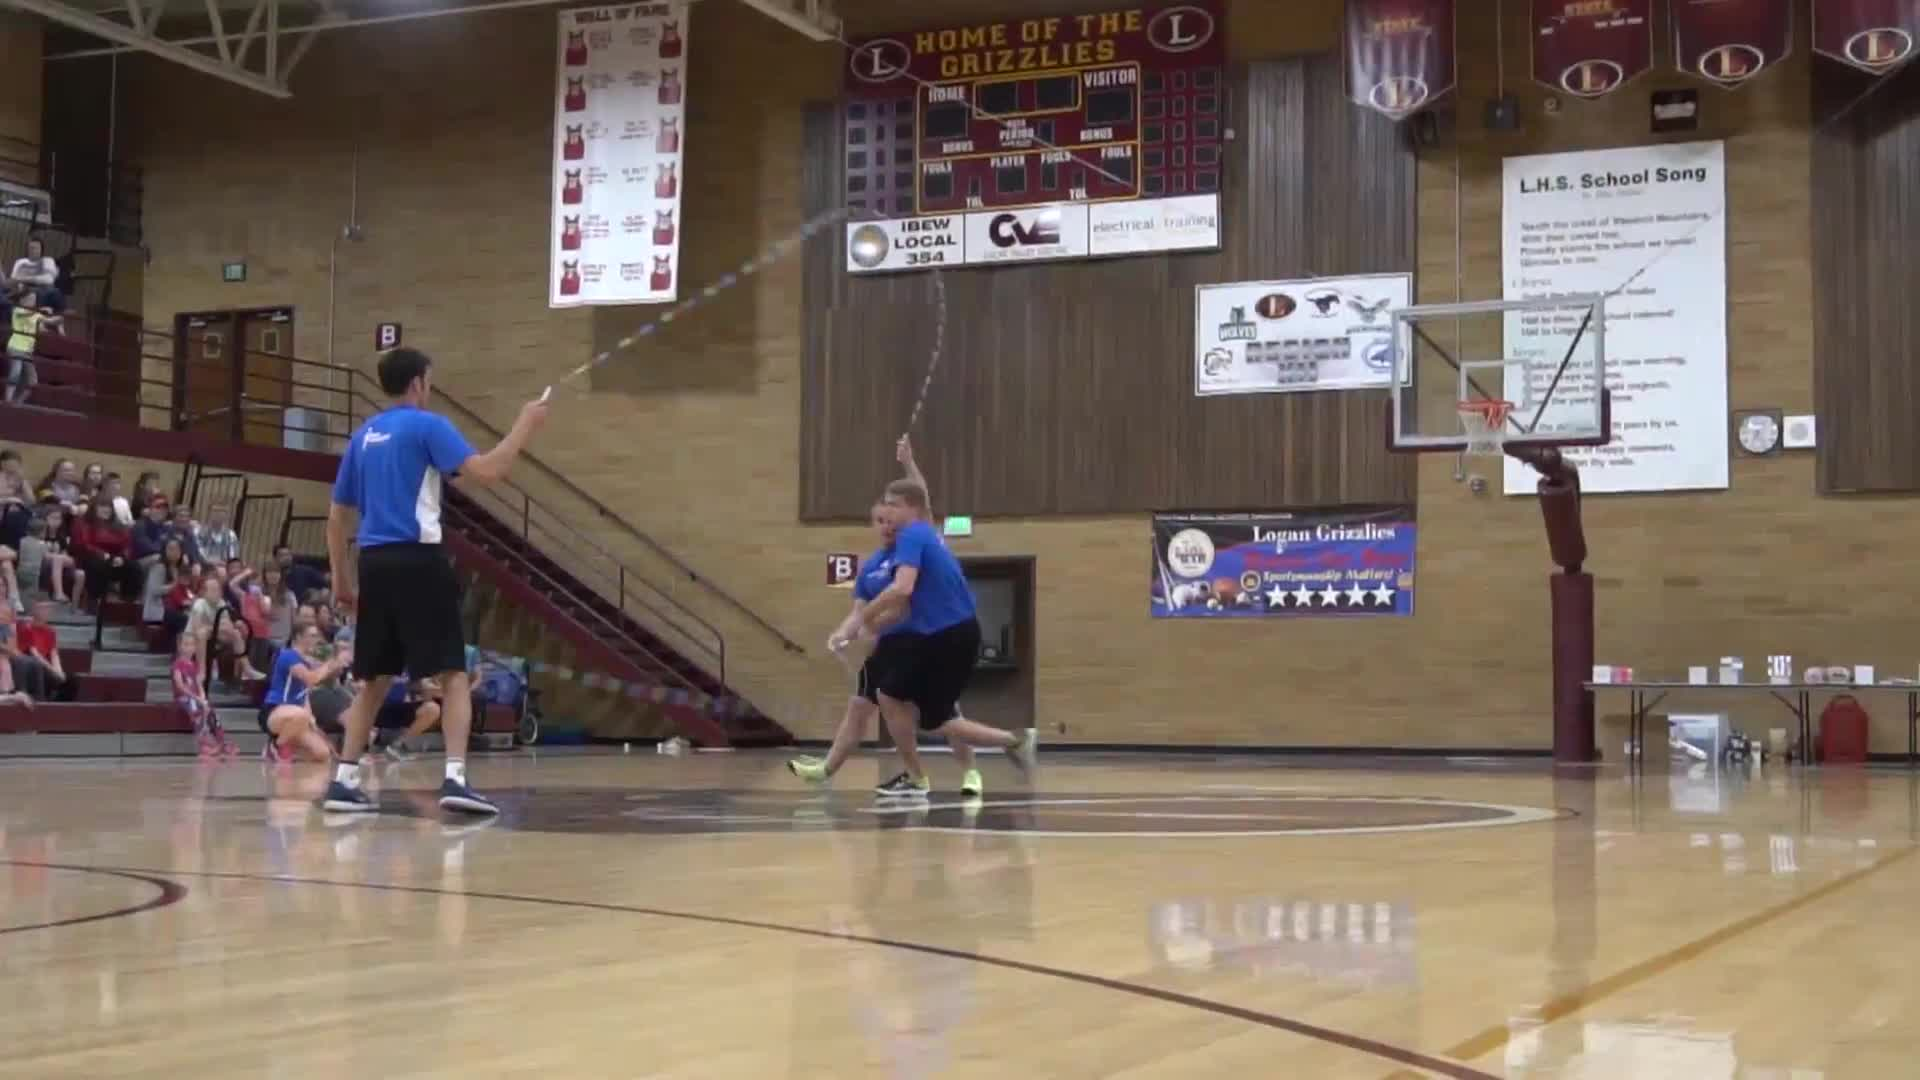 JOLT 2018, LJ jump rope, LJ lavecchia, basketball, just jumpin, tire swing, wejumprope, double dutch tricking GIFs